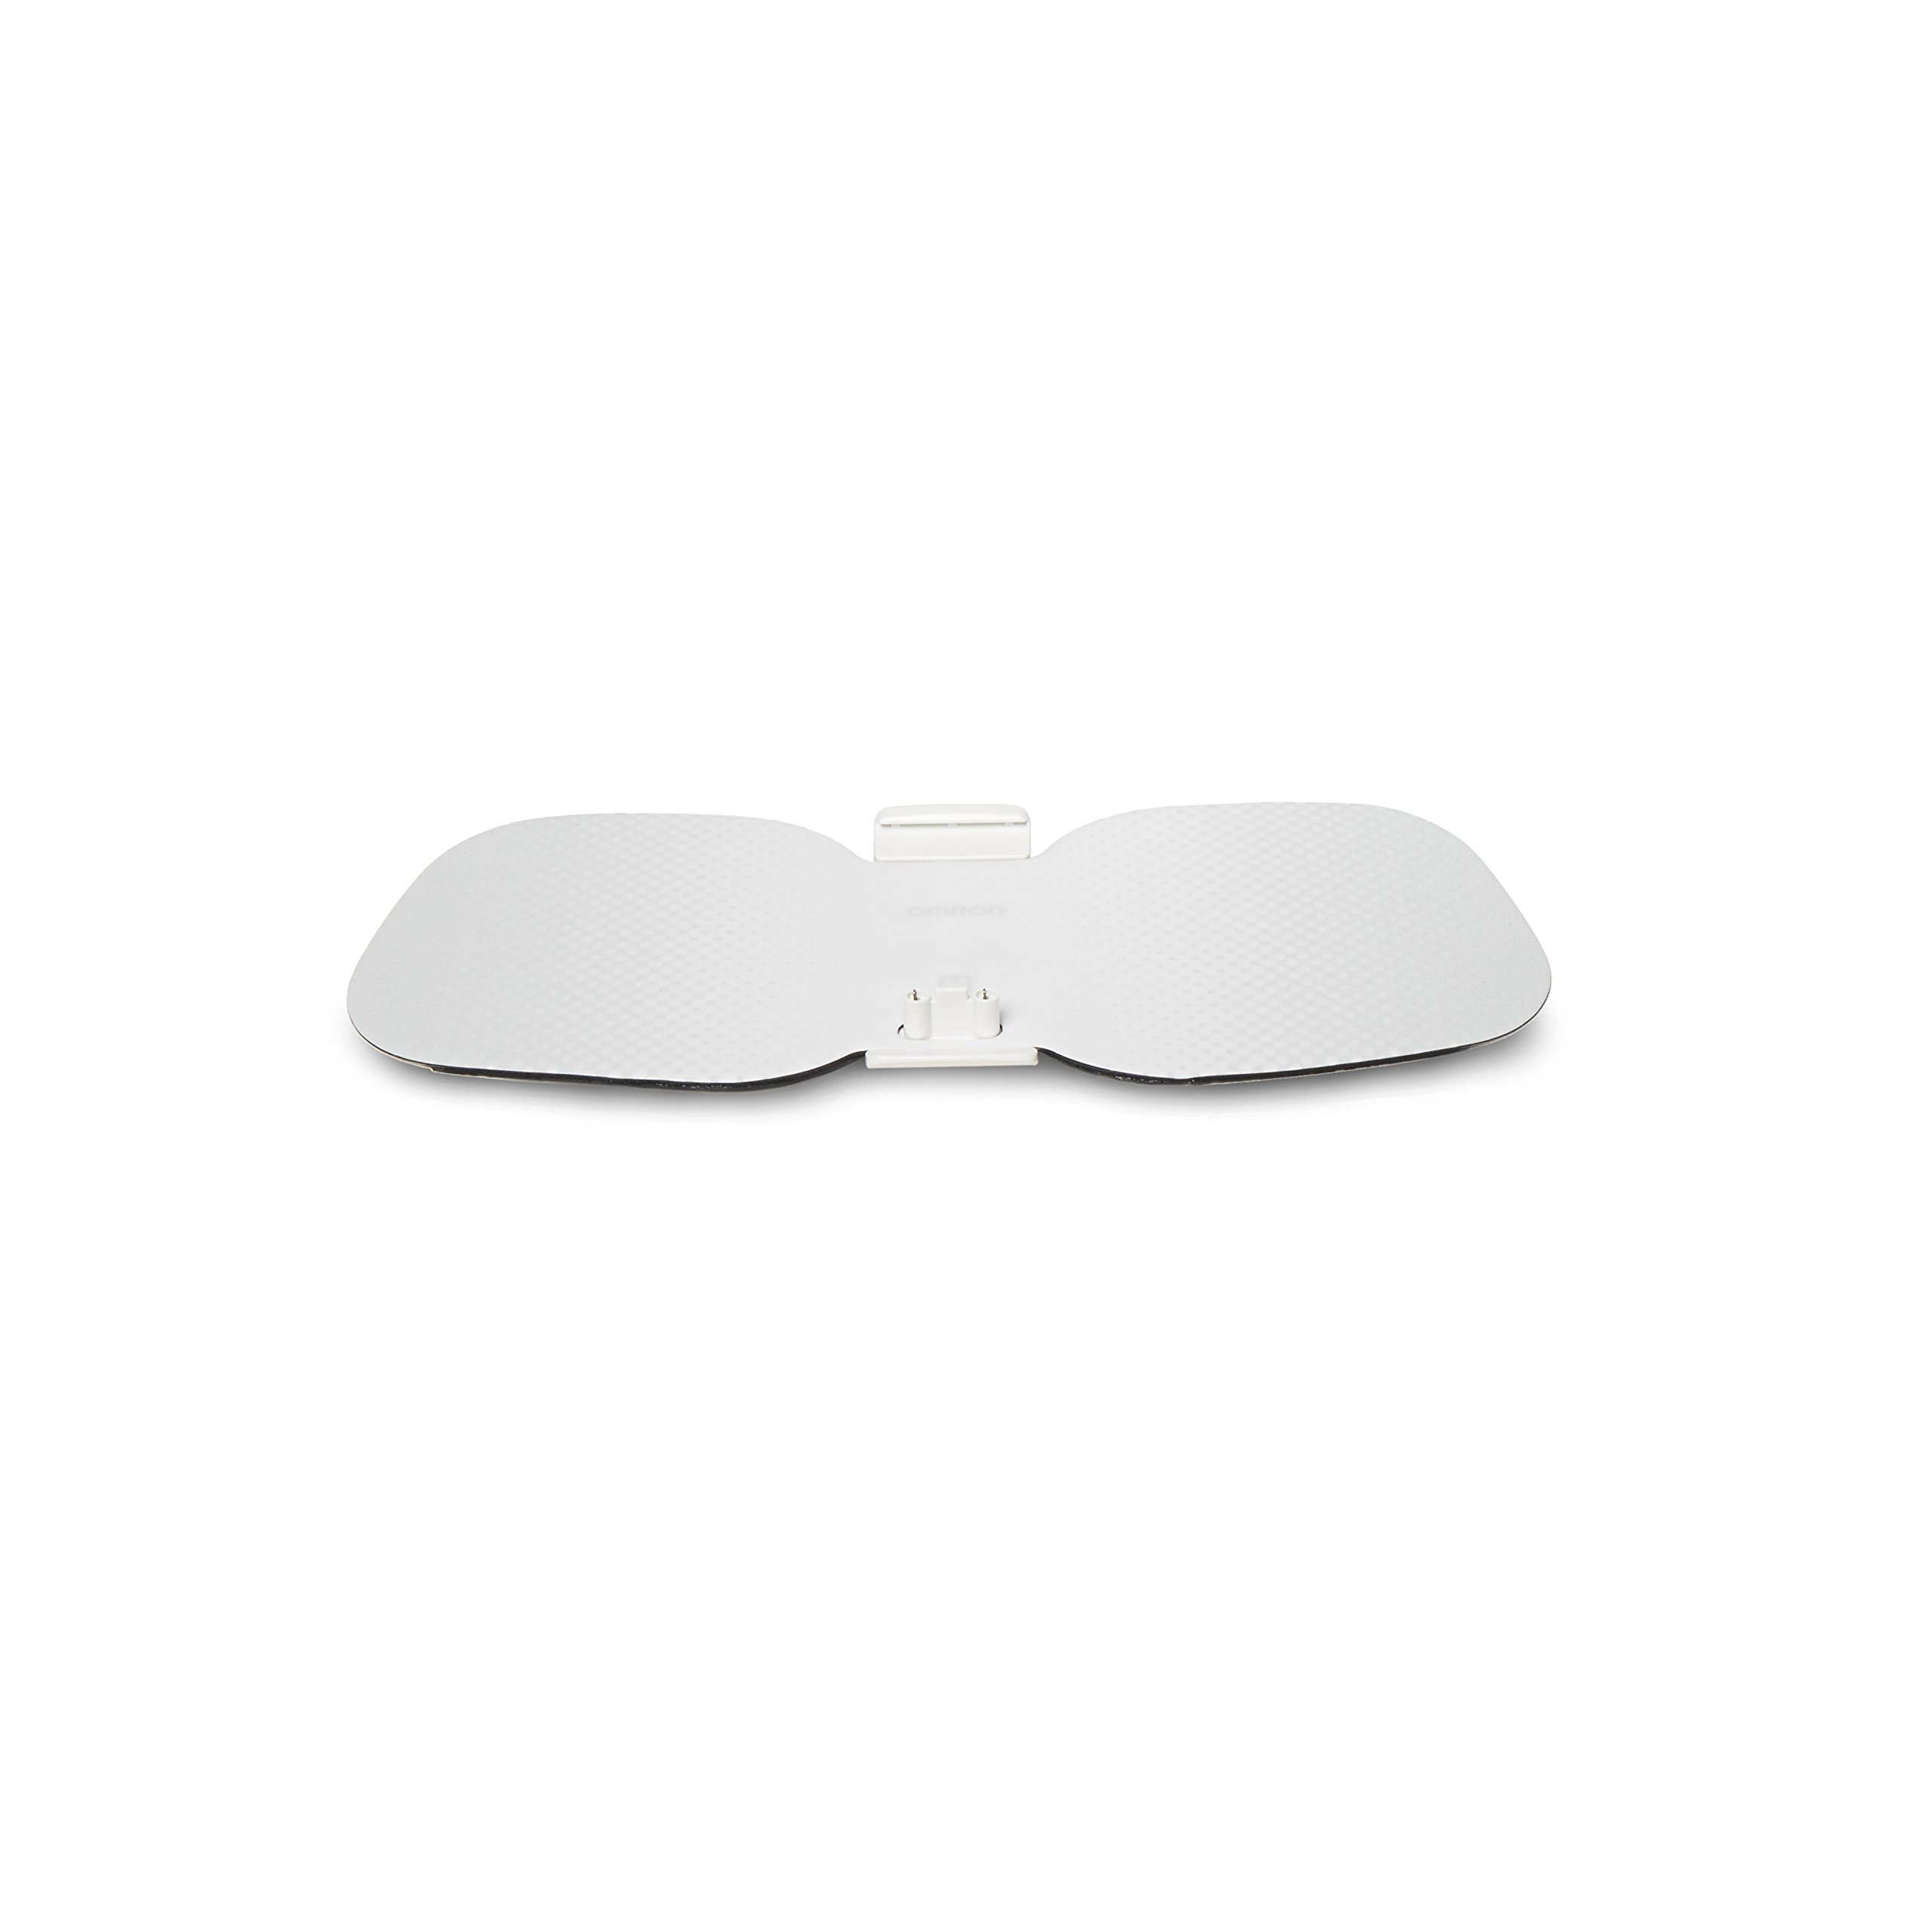 Omron Avail Medium Wireless Pad (PMWPAD-M) - Used with Omron Avail TENS Unit (PM601)